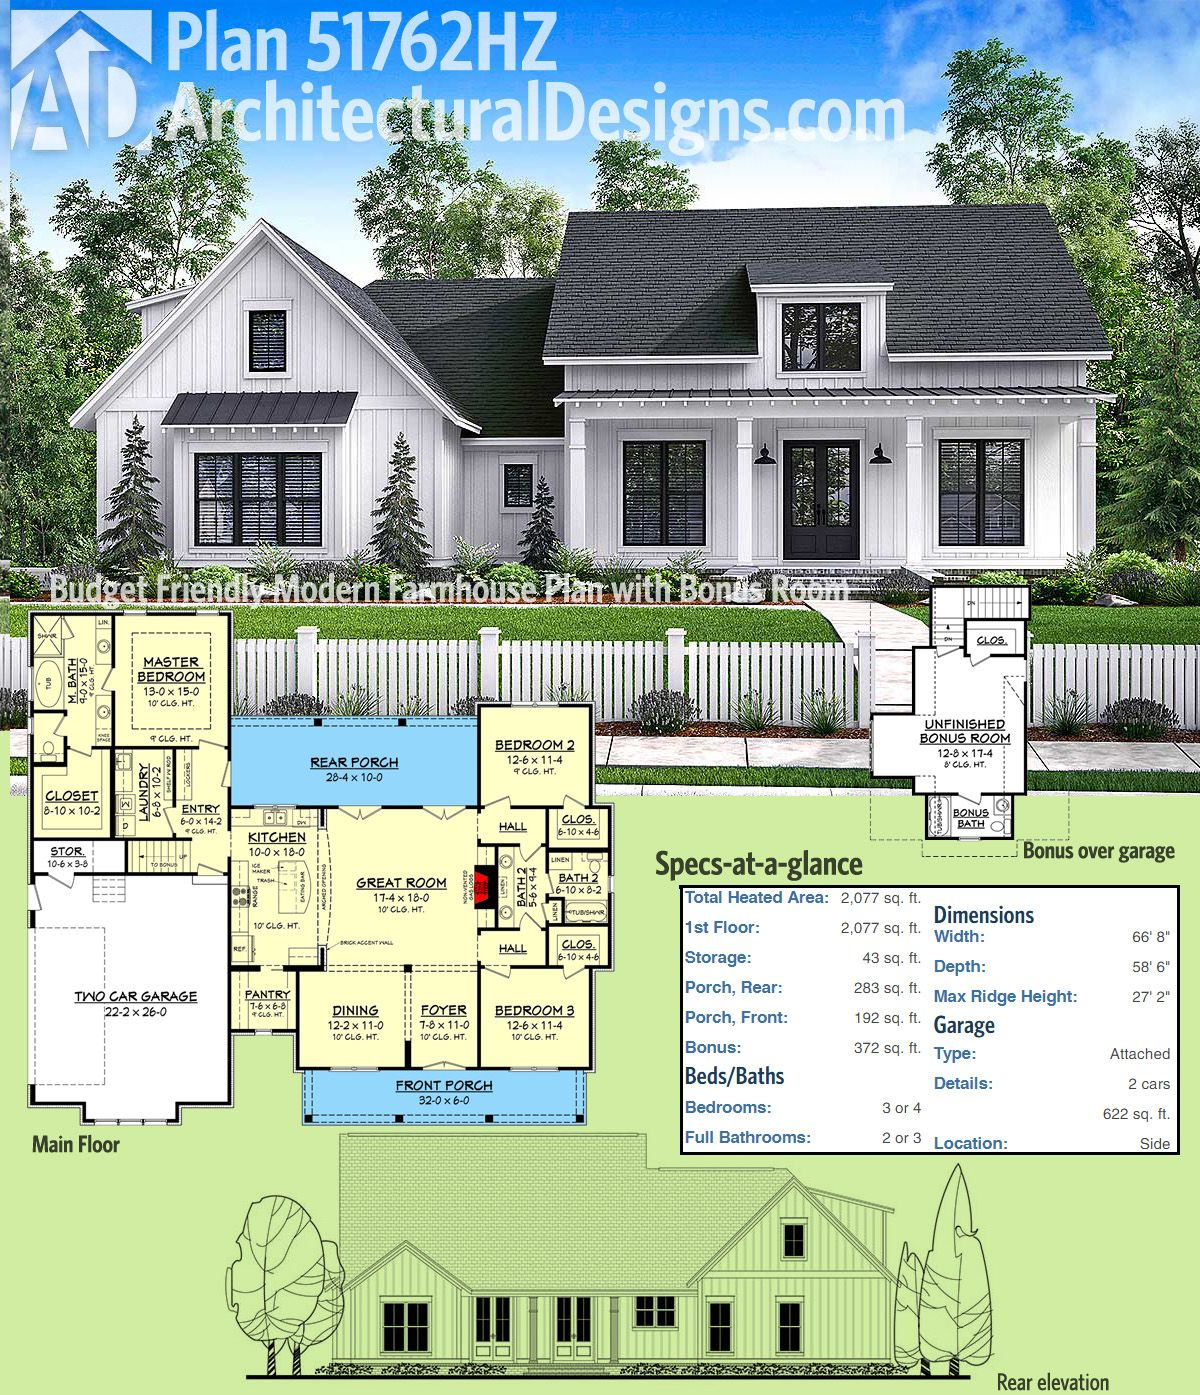 Plan 51762HZ Budget Friendly Modern Farmhouse Plan with Bonus Room